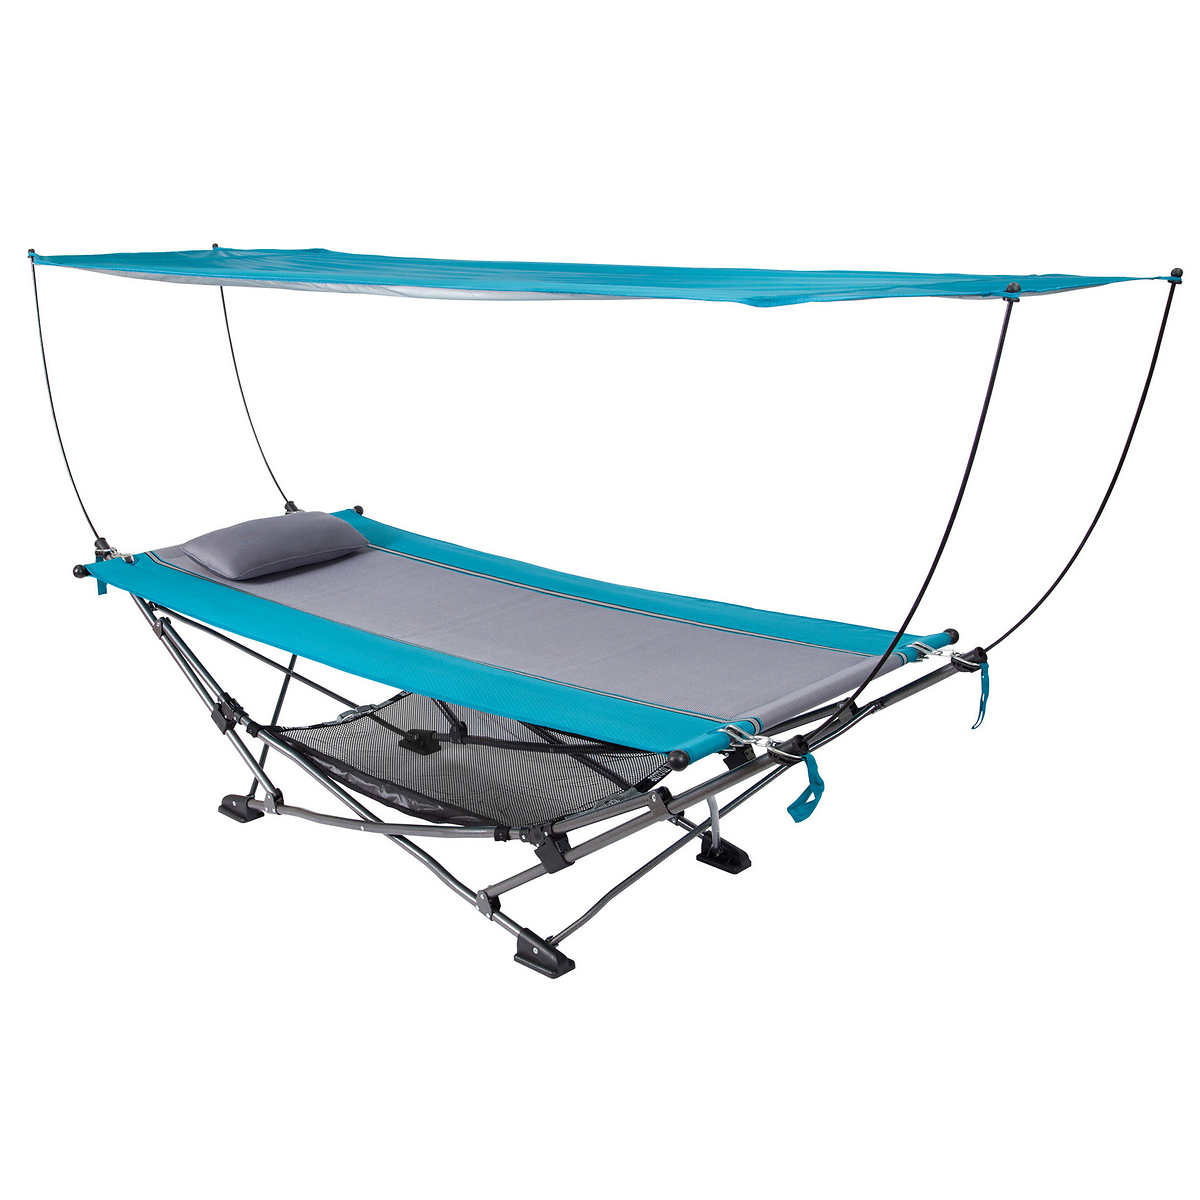 Camping bed costco - Folding Hammock With Removable Canopy